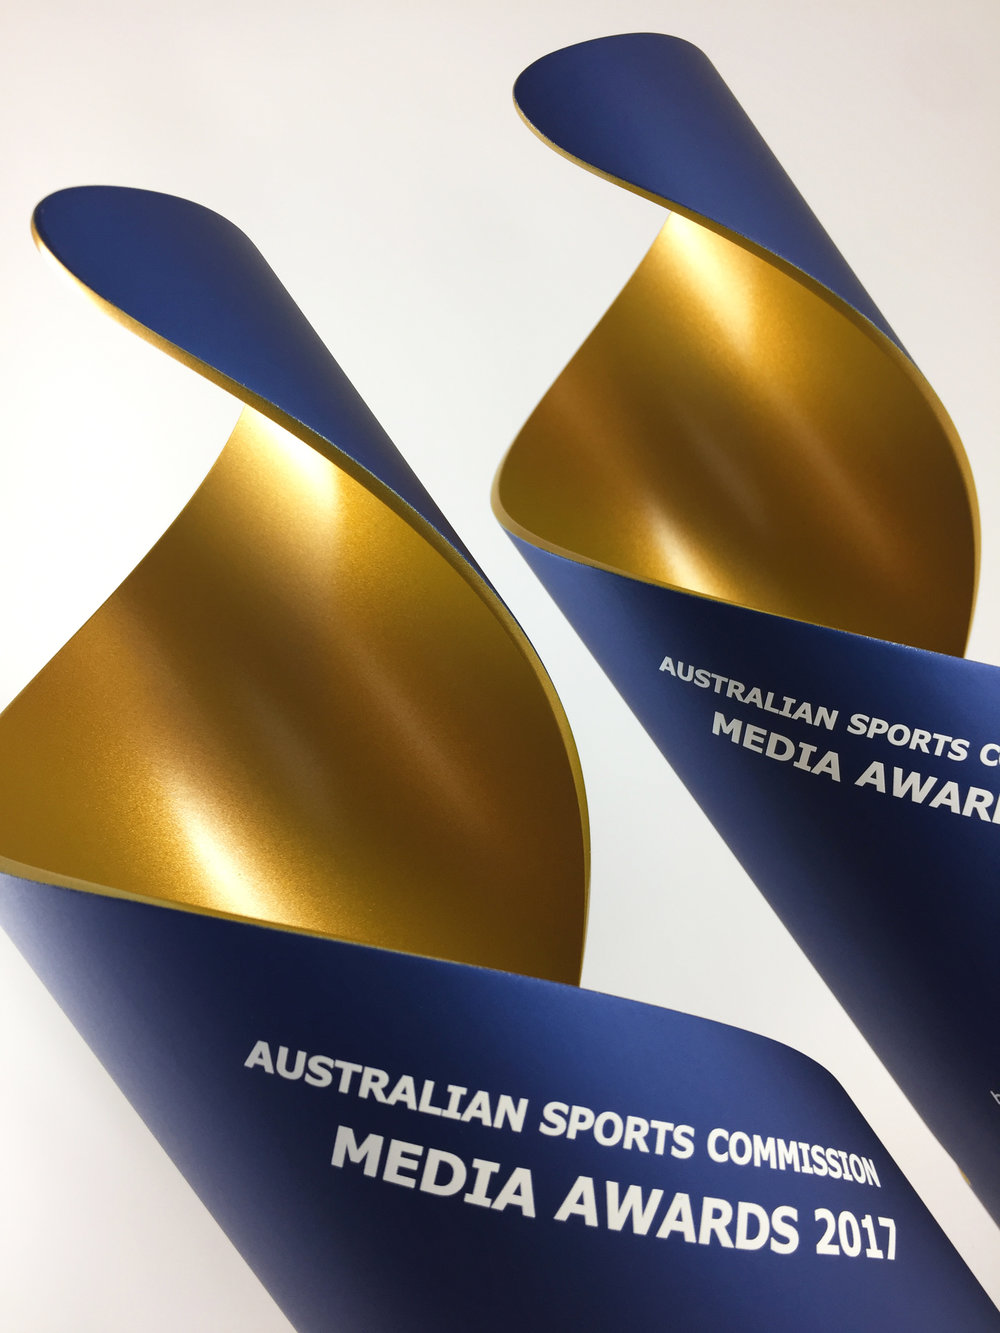 Australian-sporting-commission-media-awards-aluminium-thropy-05.jpg